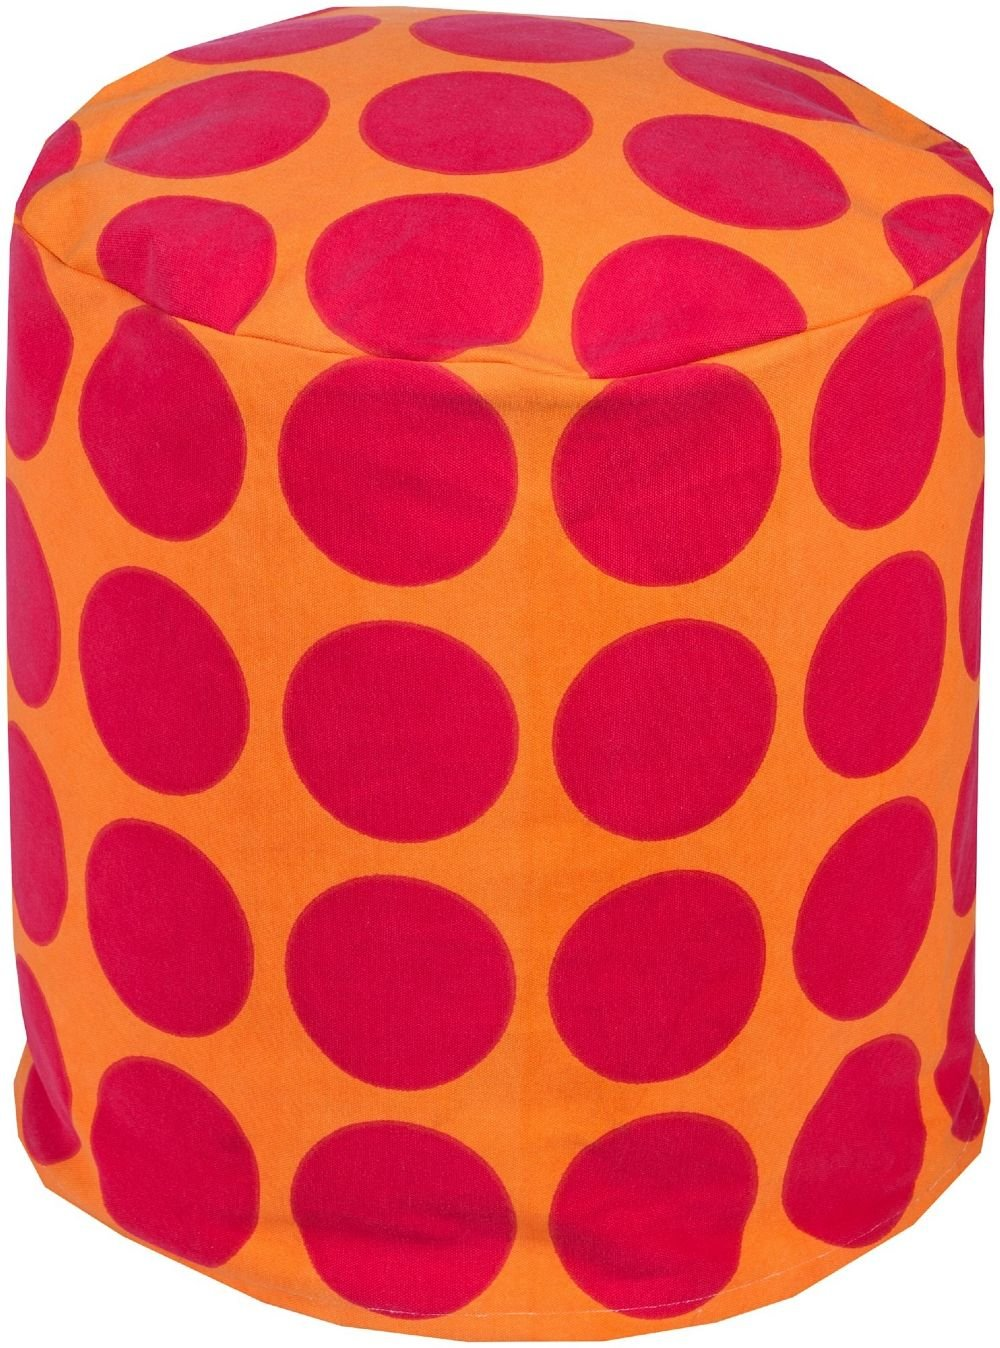 Surya Contemporary Round pouf/ottoman 18''x18''x18'' in Pink, Orange Color From Playhouse Collection